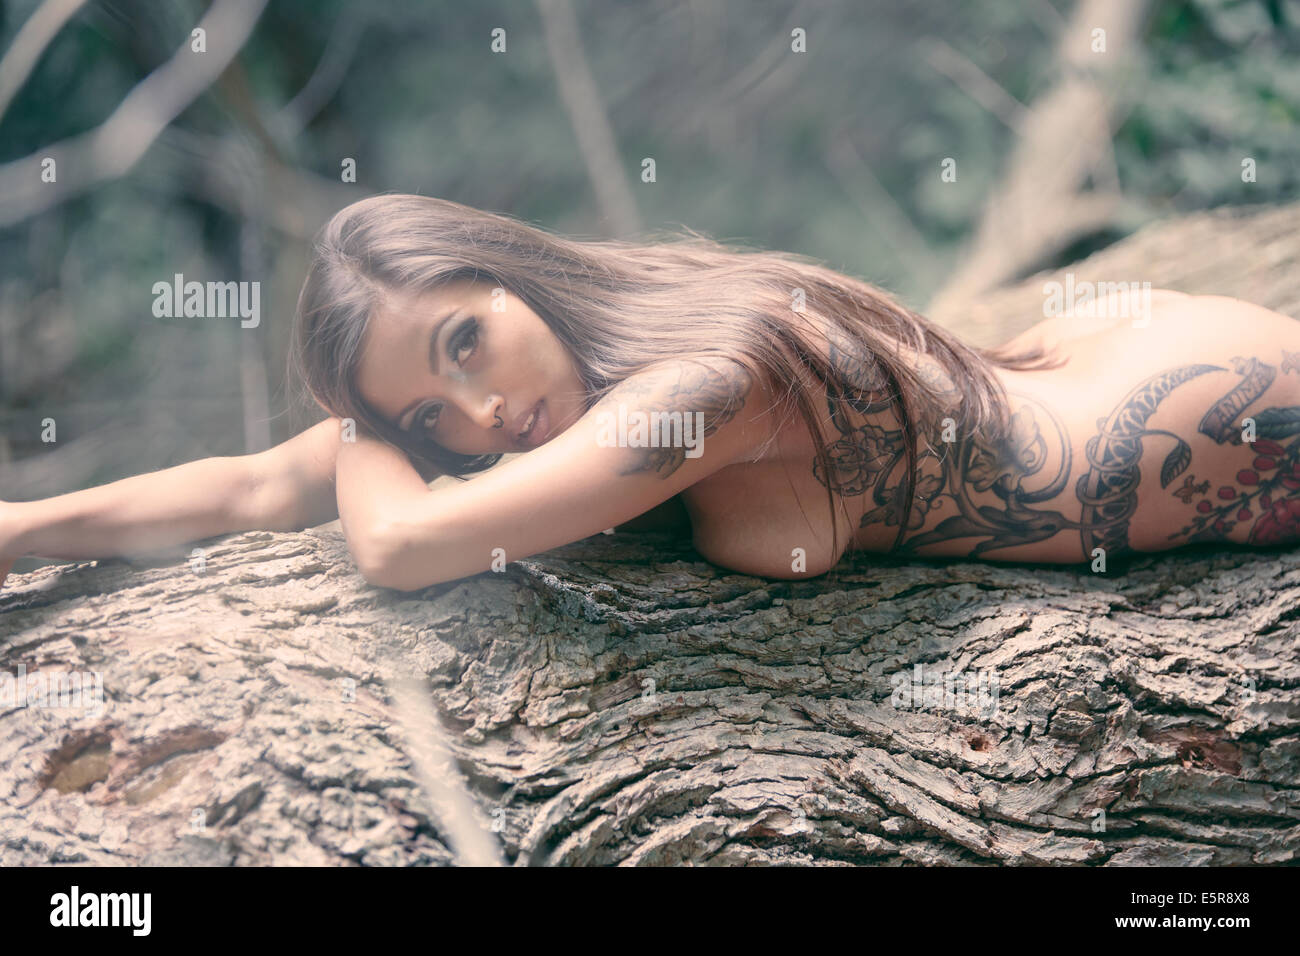 Sorry, dark tree naked woman